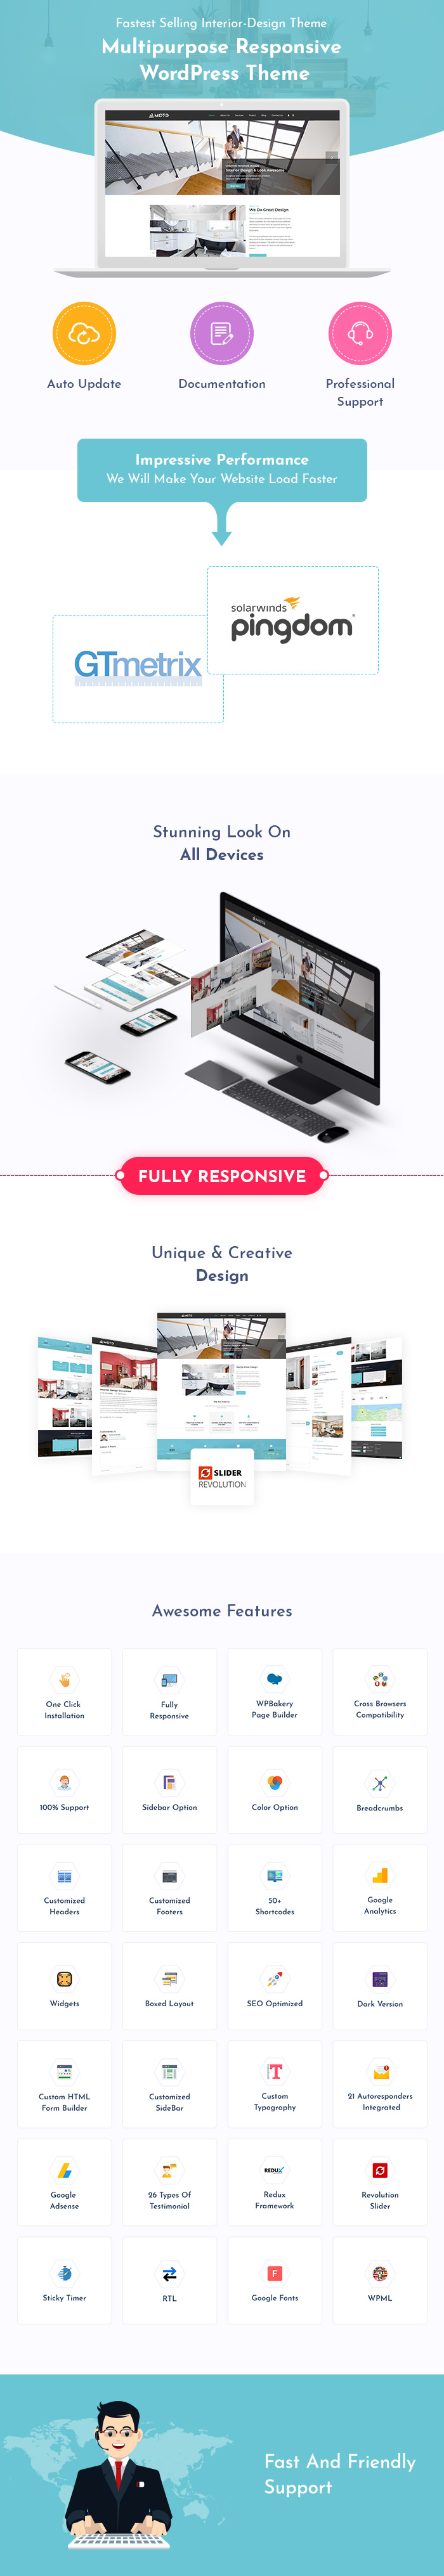 Interior Design & Architecture WordPress Themes